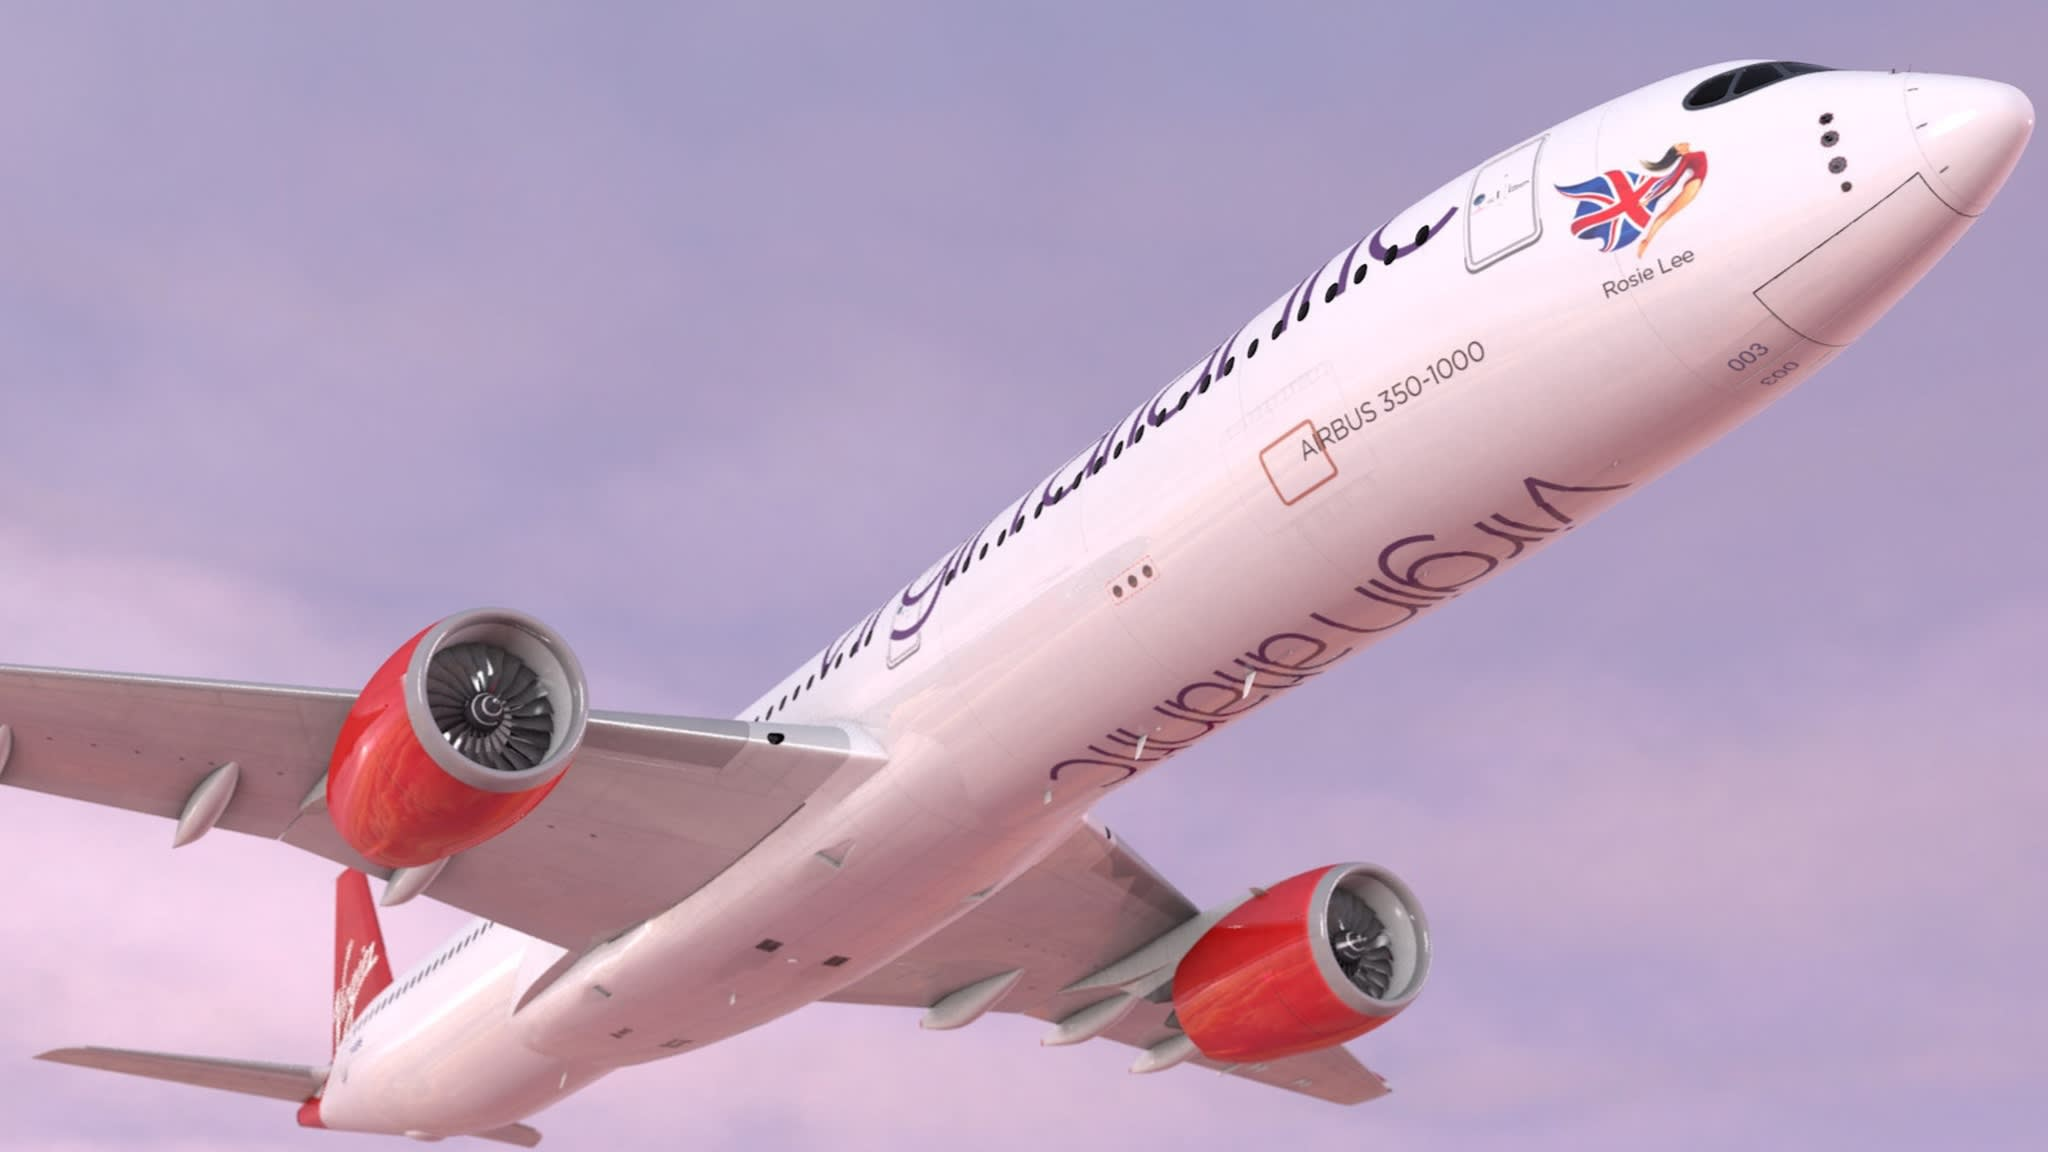 Virgin Atlantic makes first loss in 4 years | Financial Times